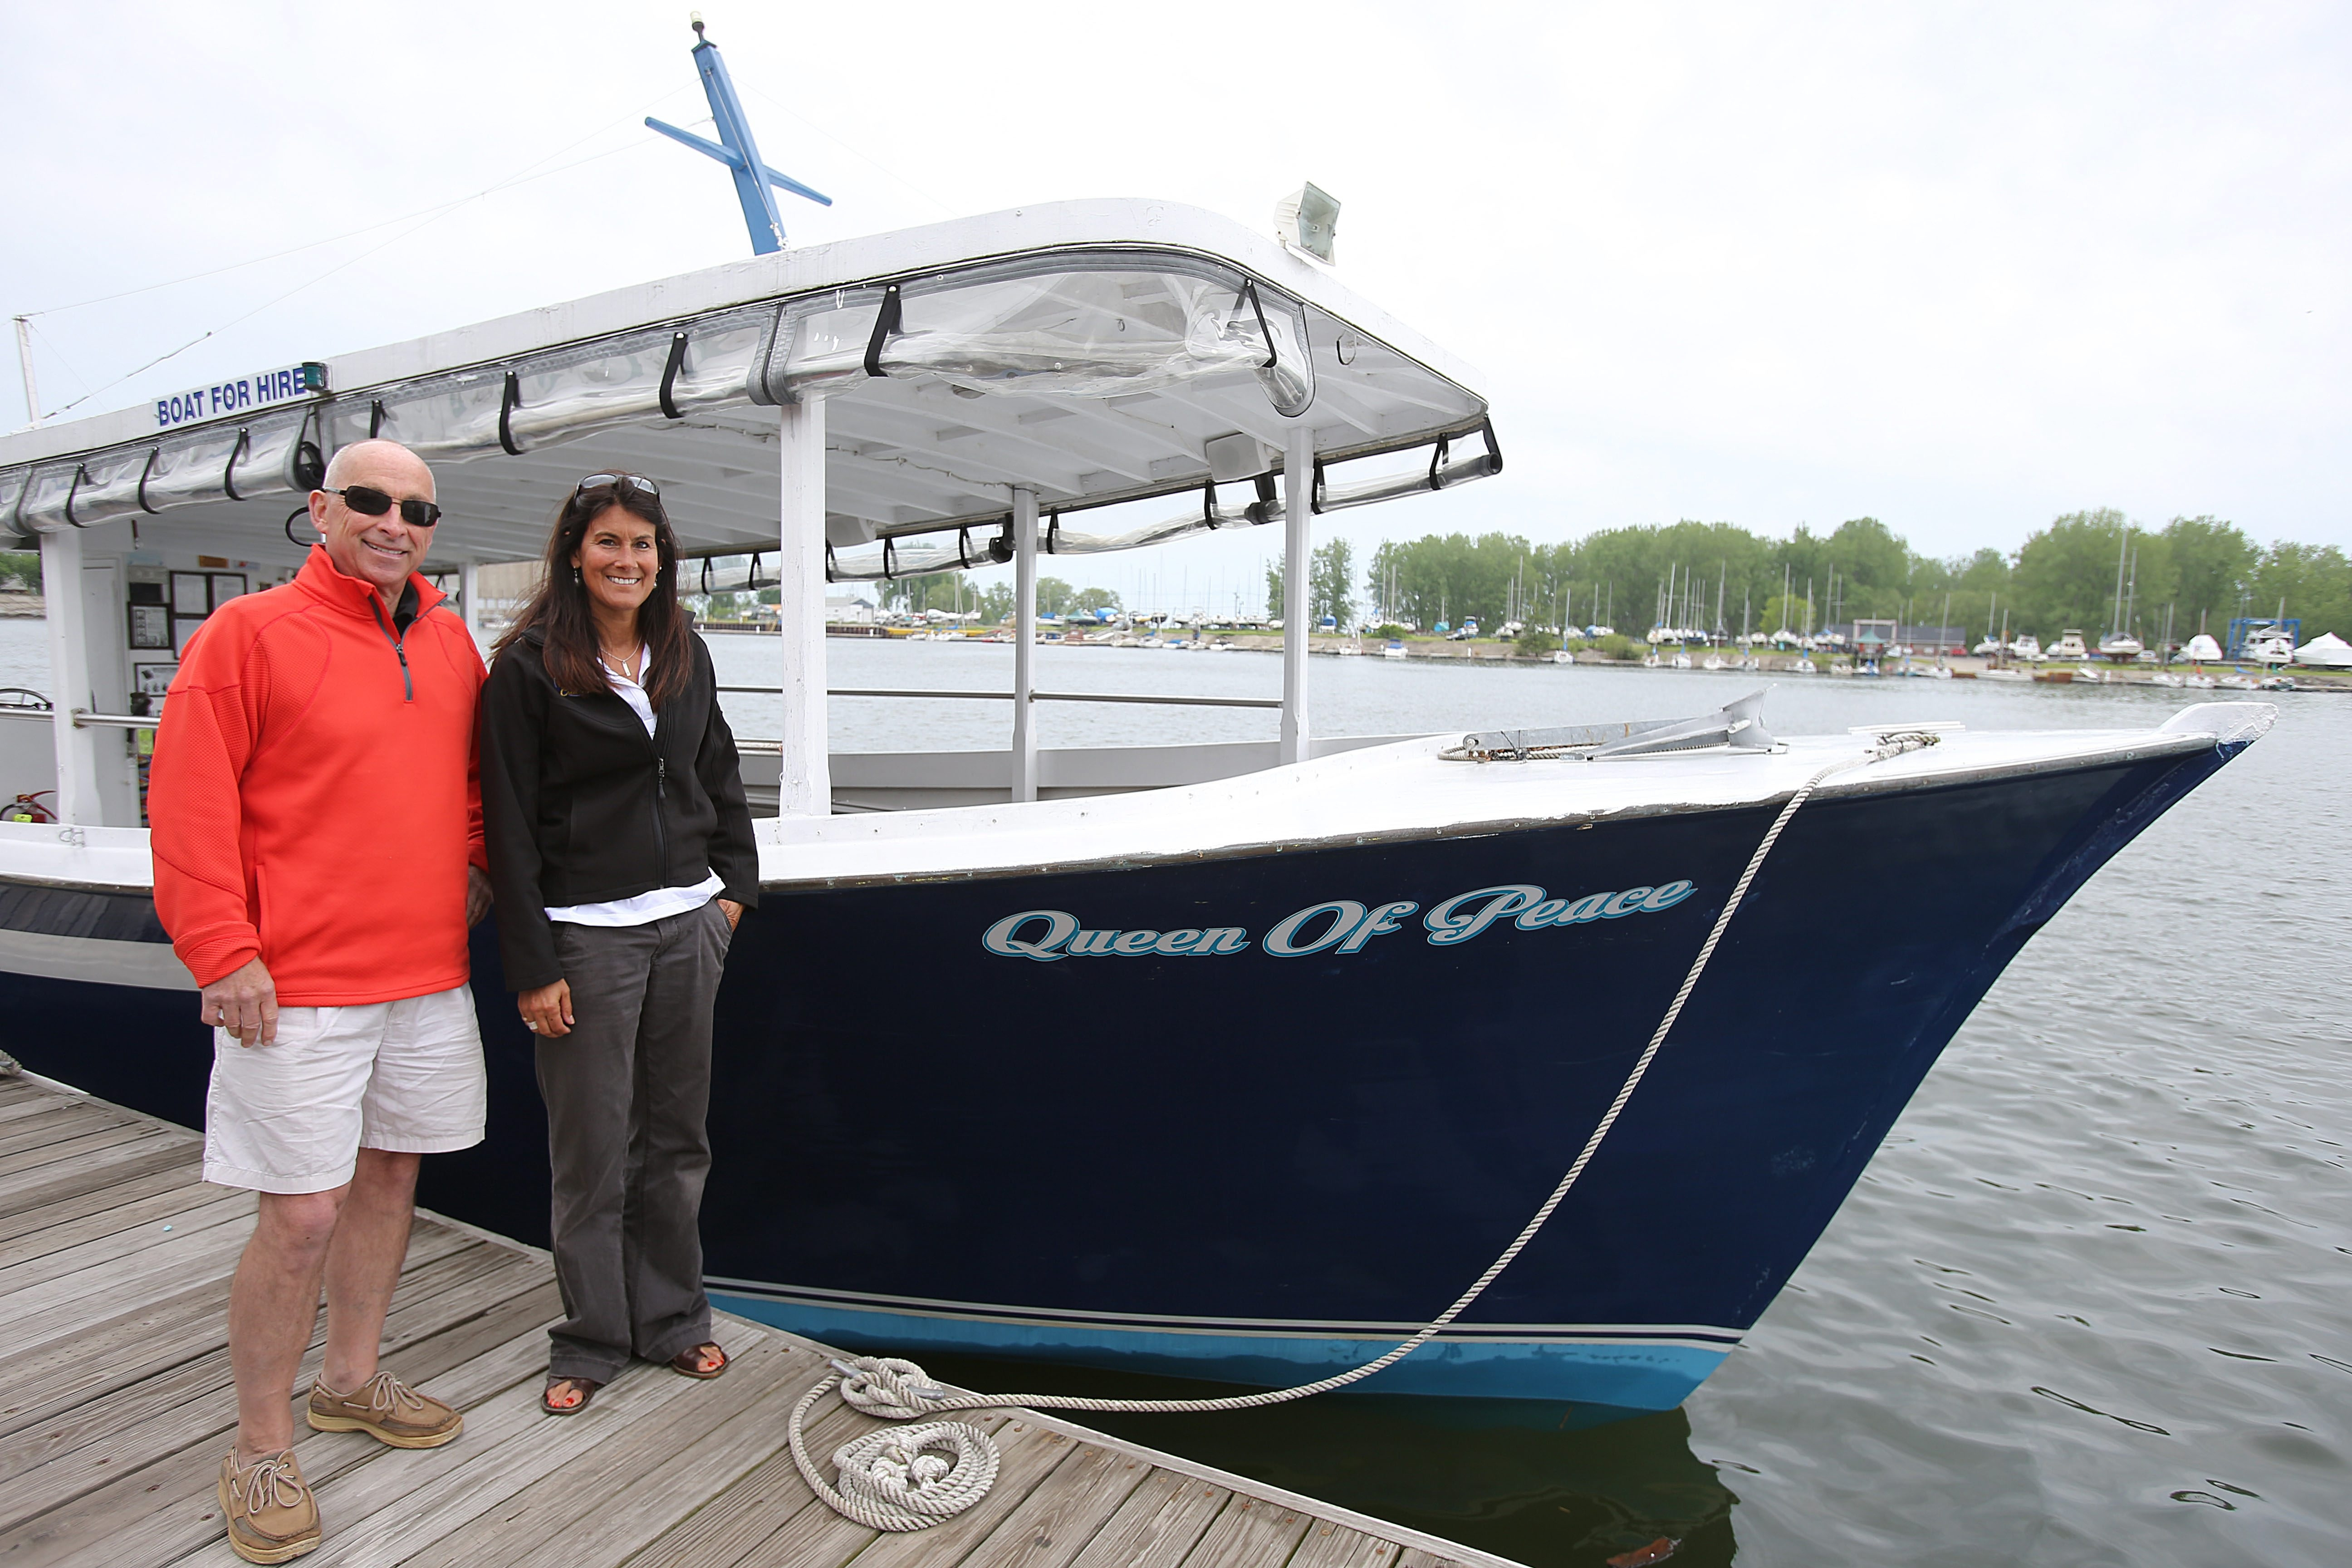 Co-owners Tom Hauser and Robin Hoch with their boat, the Queen of Peace, which will be plying the waters for this summer's Niagara River Cruises.